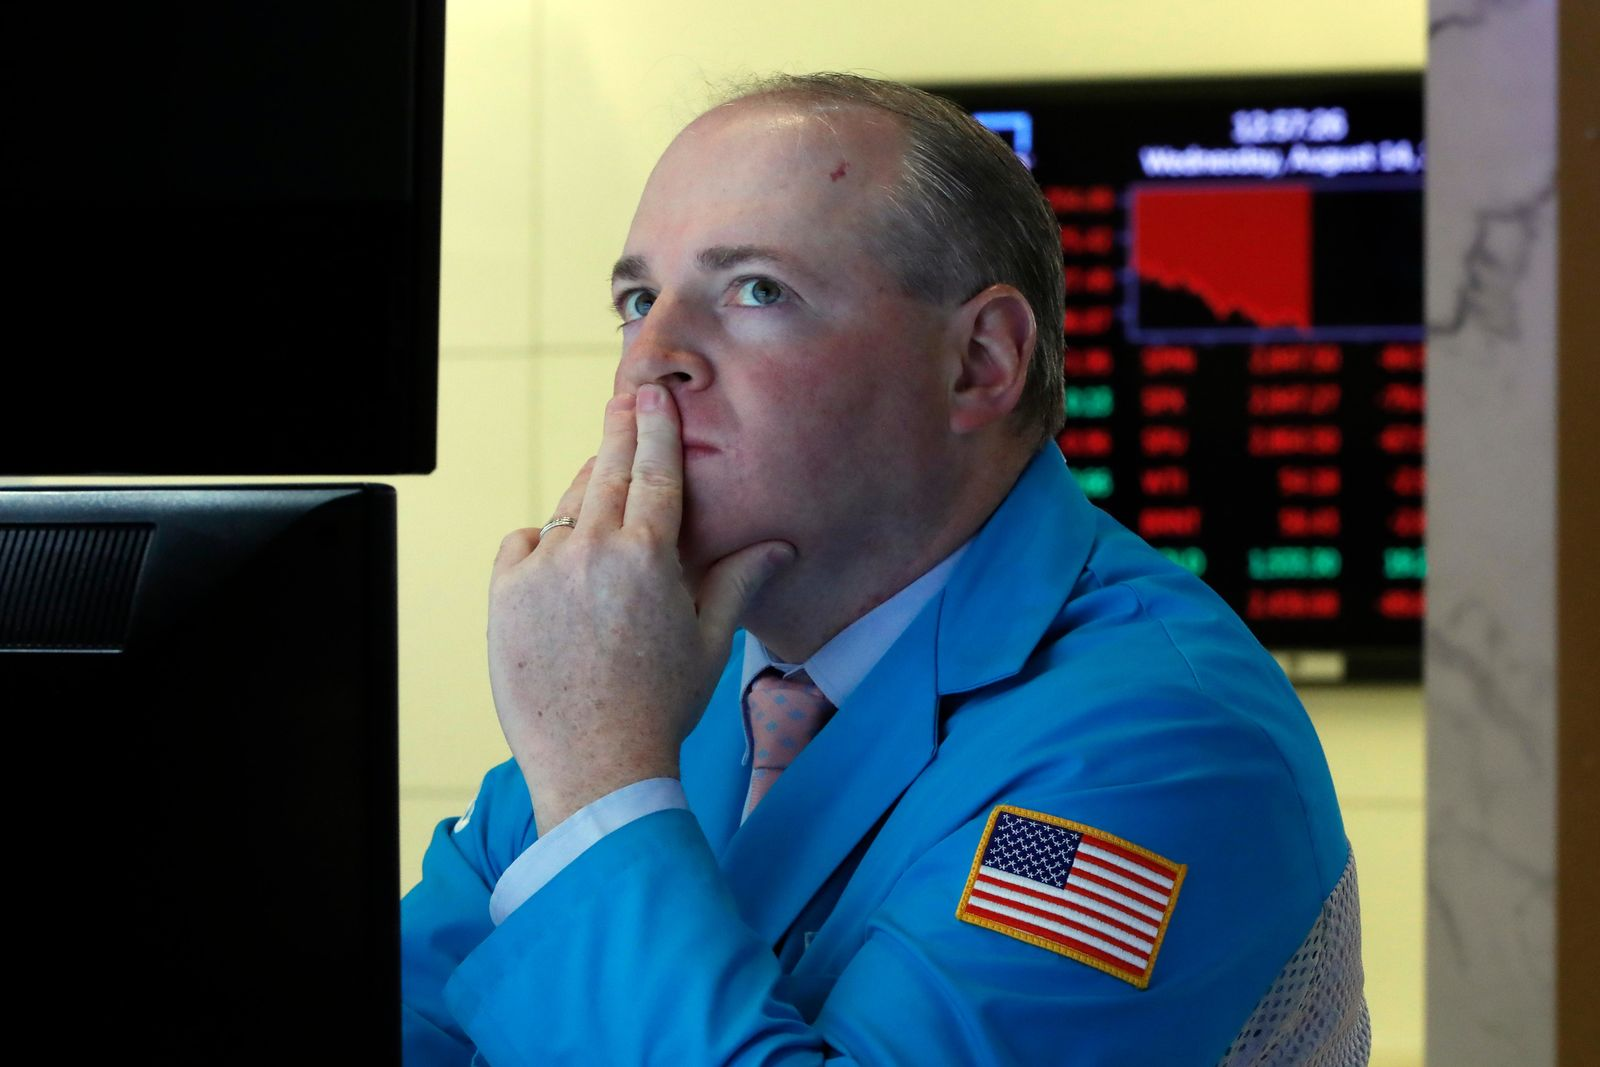 Specialist Edward Loggie works on the floor of the New York Stock Exchange, Wednesday, Aug. 14, 2019. Stocks are falling sharply after the bond market threw up another warning flag on the economy. (AP Photo/Richard Drew)